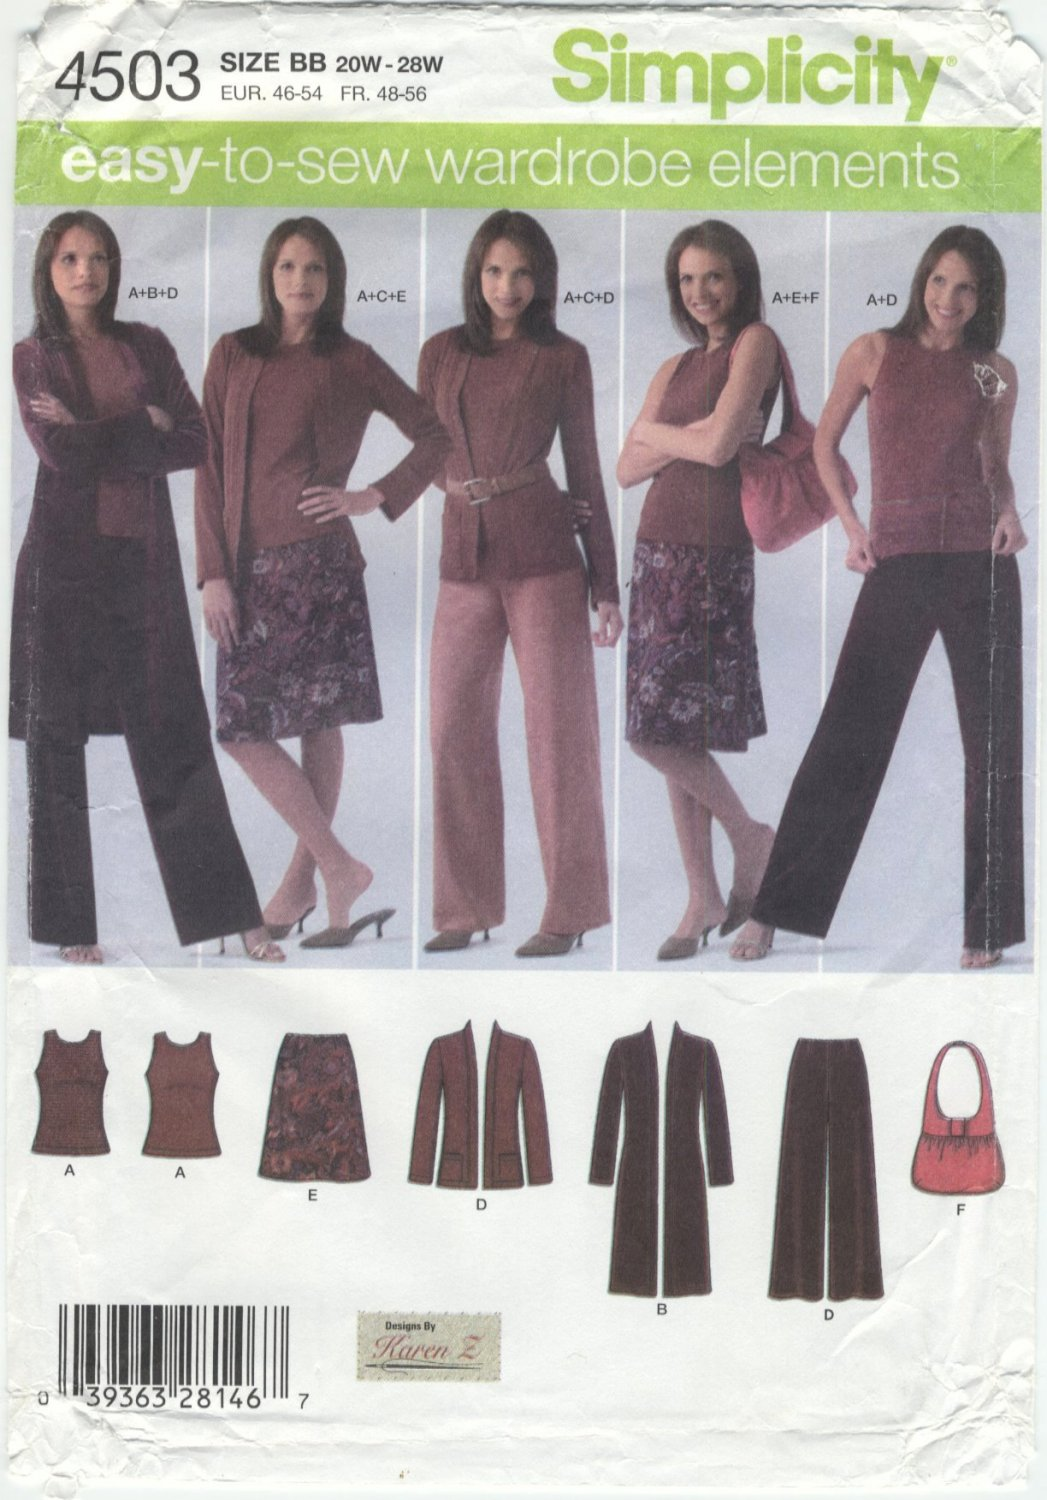 Simplicity 4503 Top Cardigan Pants Skirt Bag - Sewing Pattern Women's 20W-28W Easy Wardrobe Builder